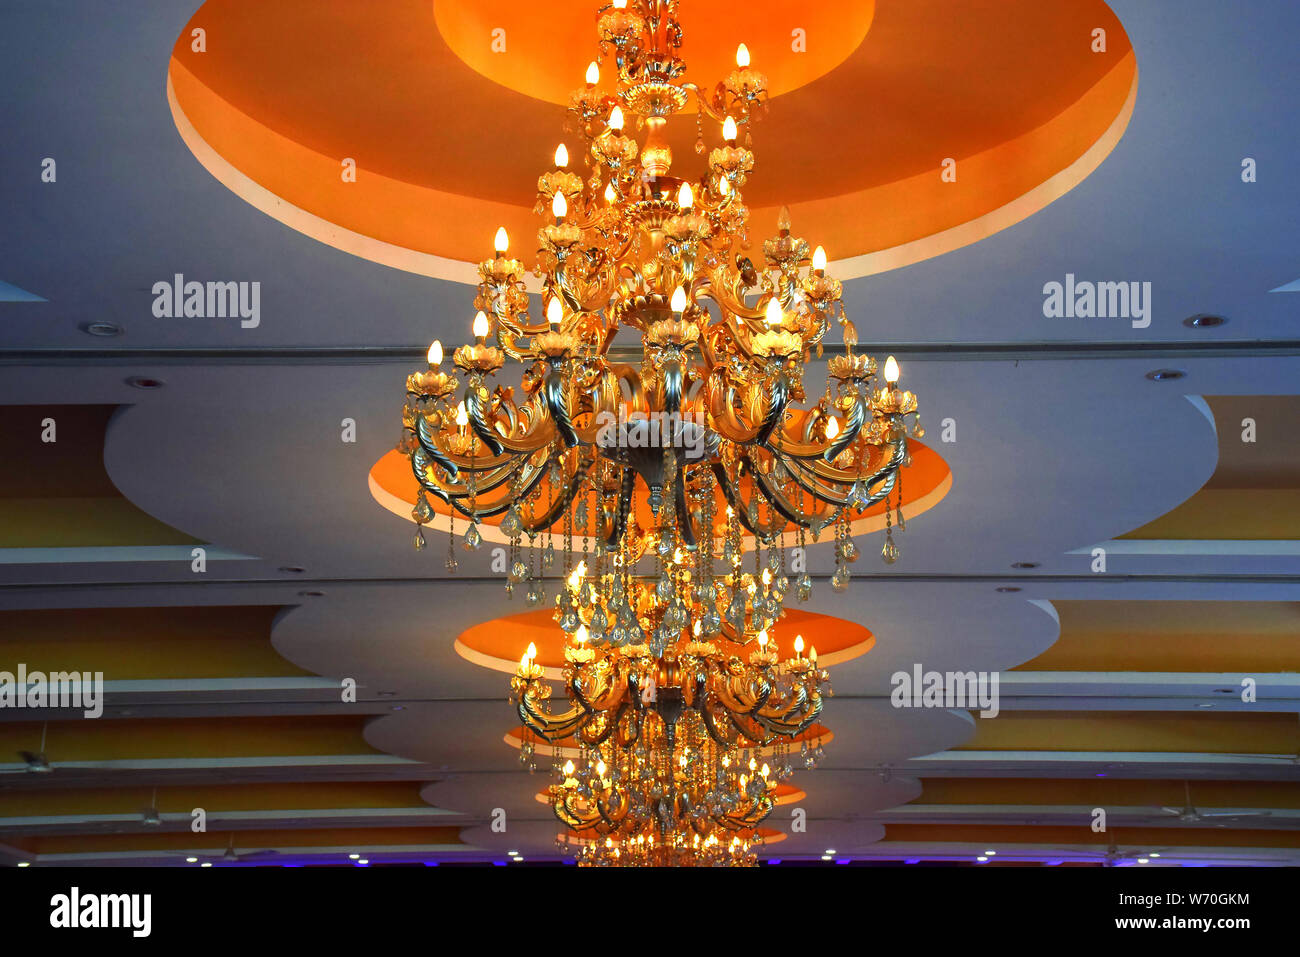 rooftop beautiful chandelier with light Stock Photo